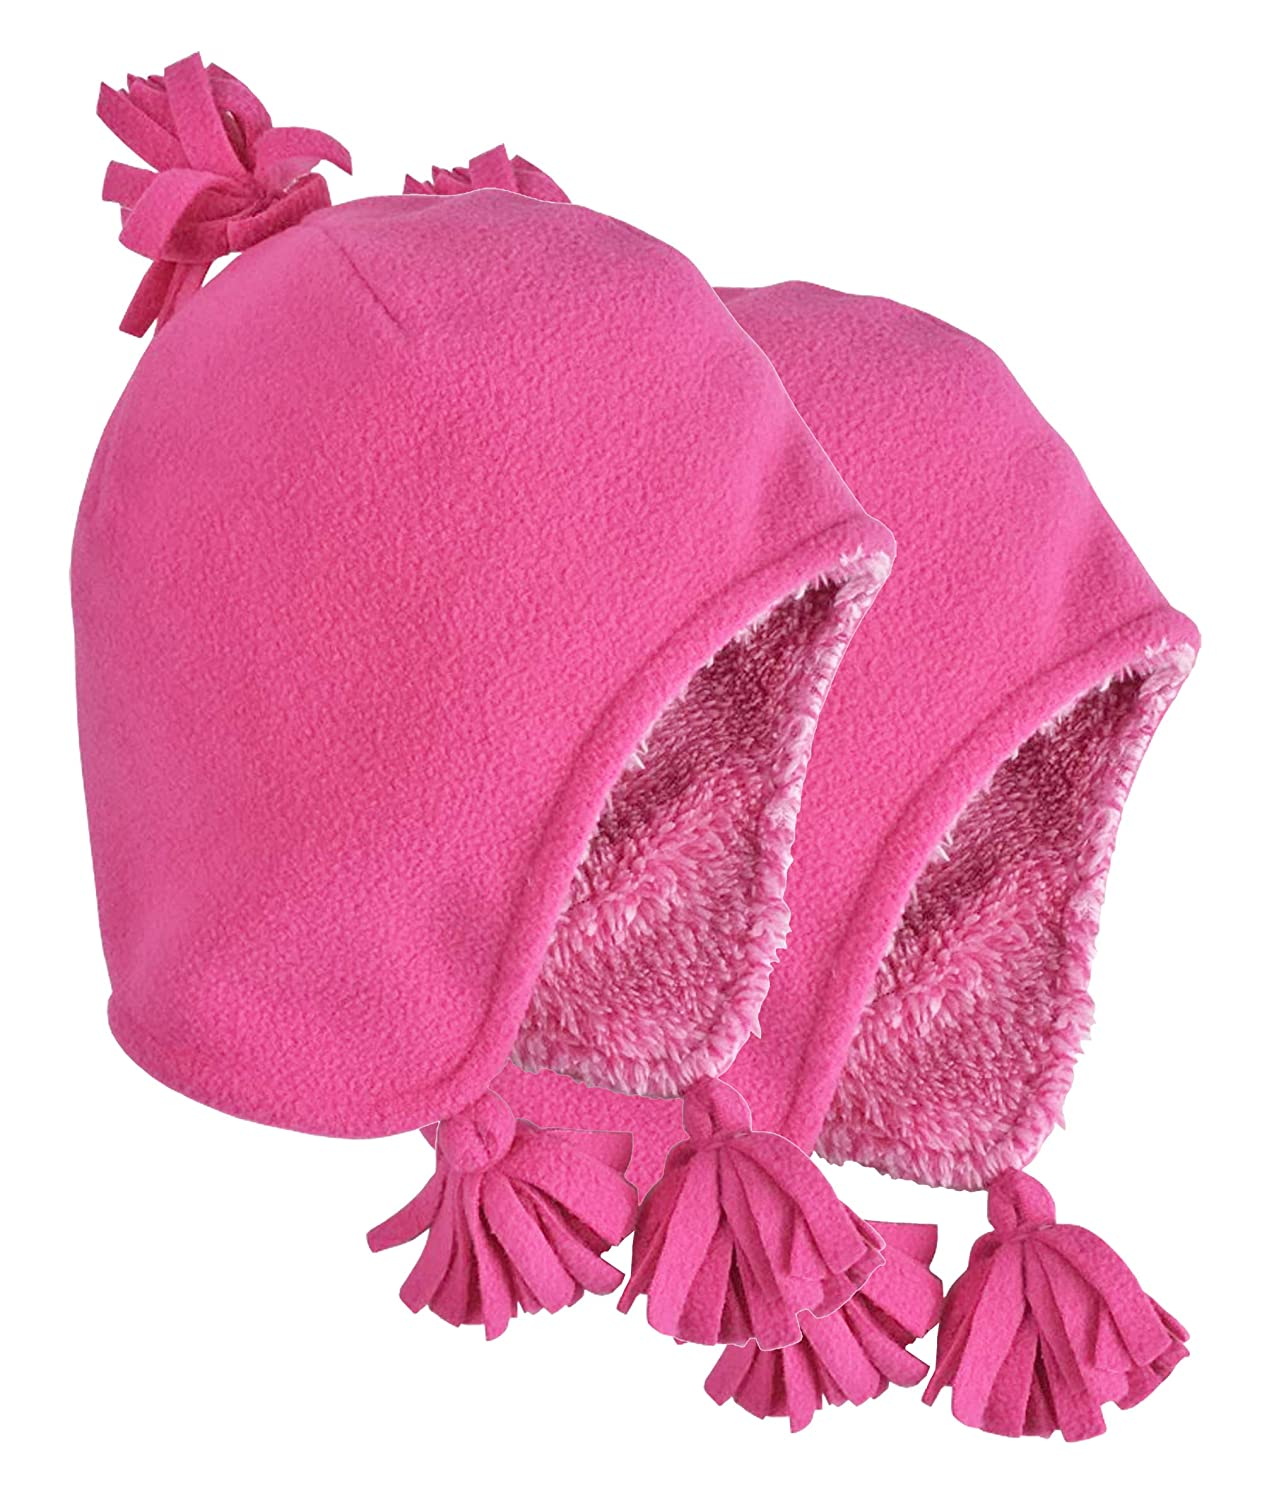 N'Ice Caps Toddler Girls and Baby Sherpa Lined Micro Fleece Winter Hats - 2 Pack